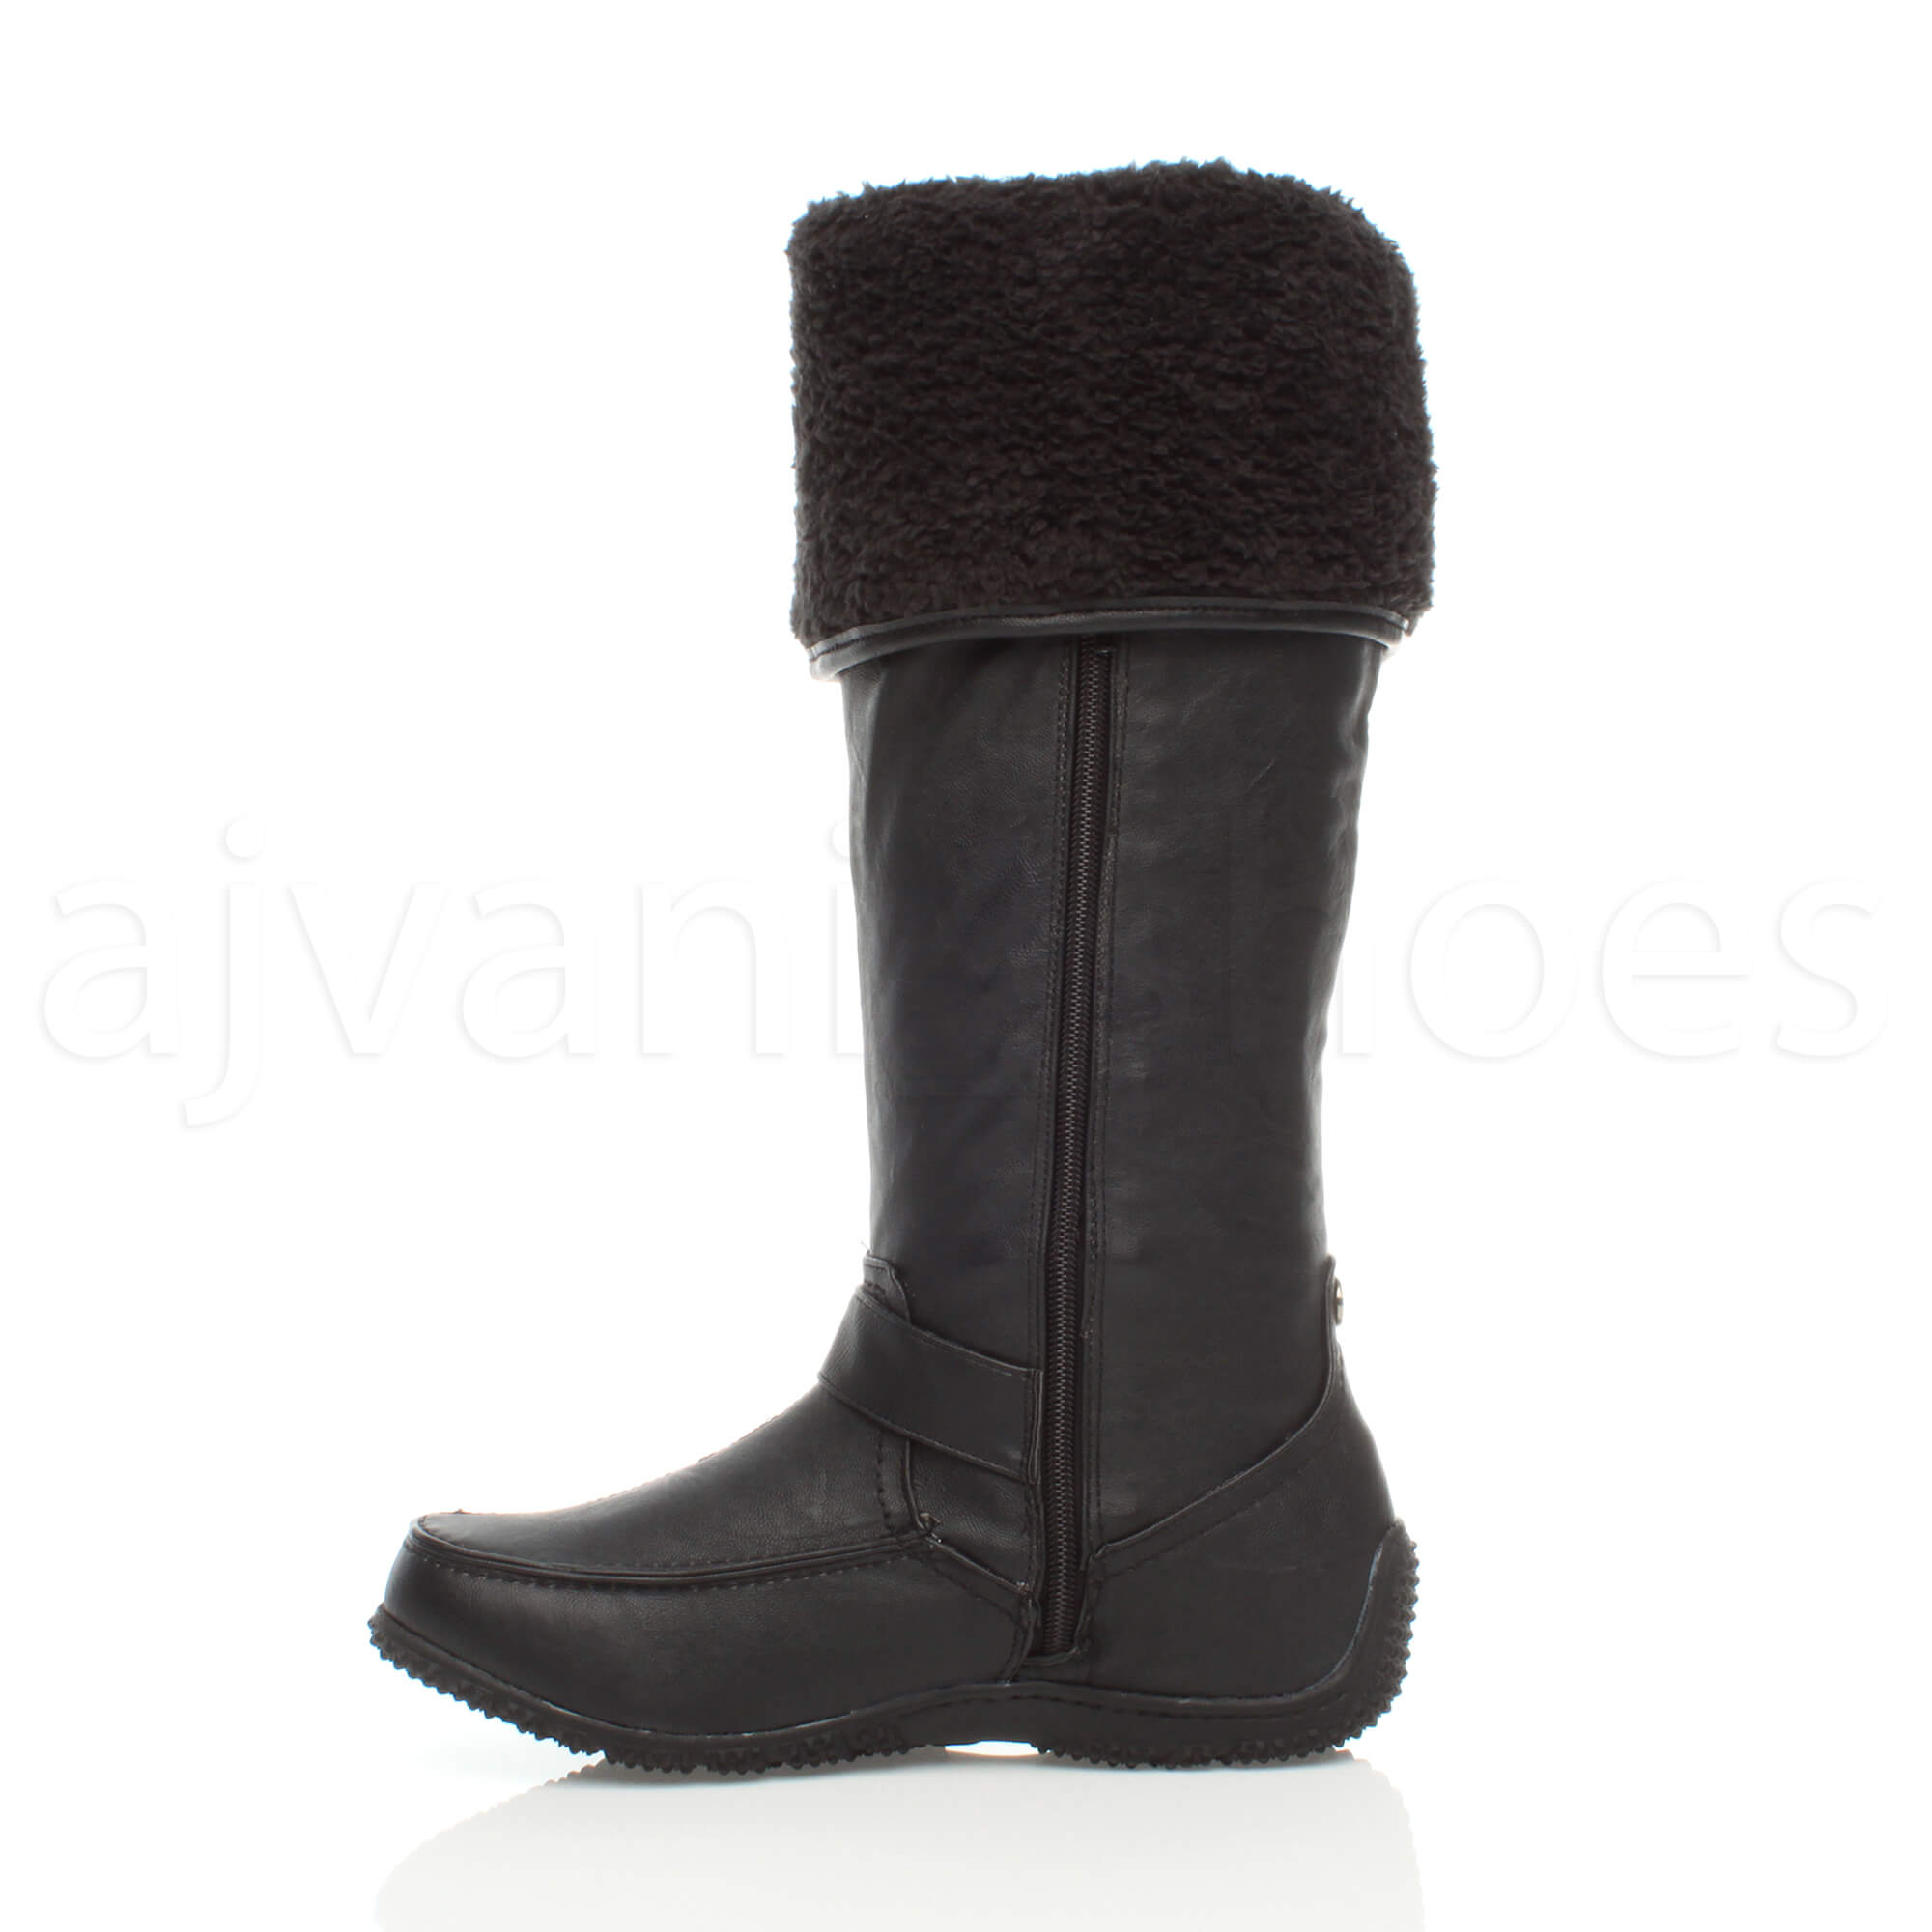 WOMENS-LADIES-GRIP-SOLE-WINTER-FUR-LINING-FOLDOVER-ZIP-CALF-FLAT-KNEE-BOOTS-SIZE